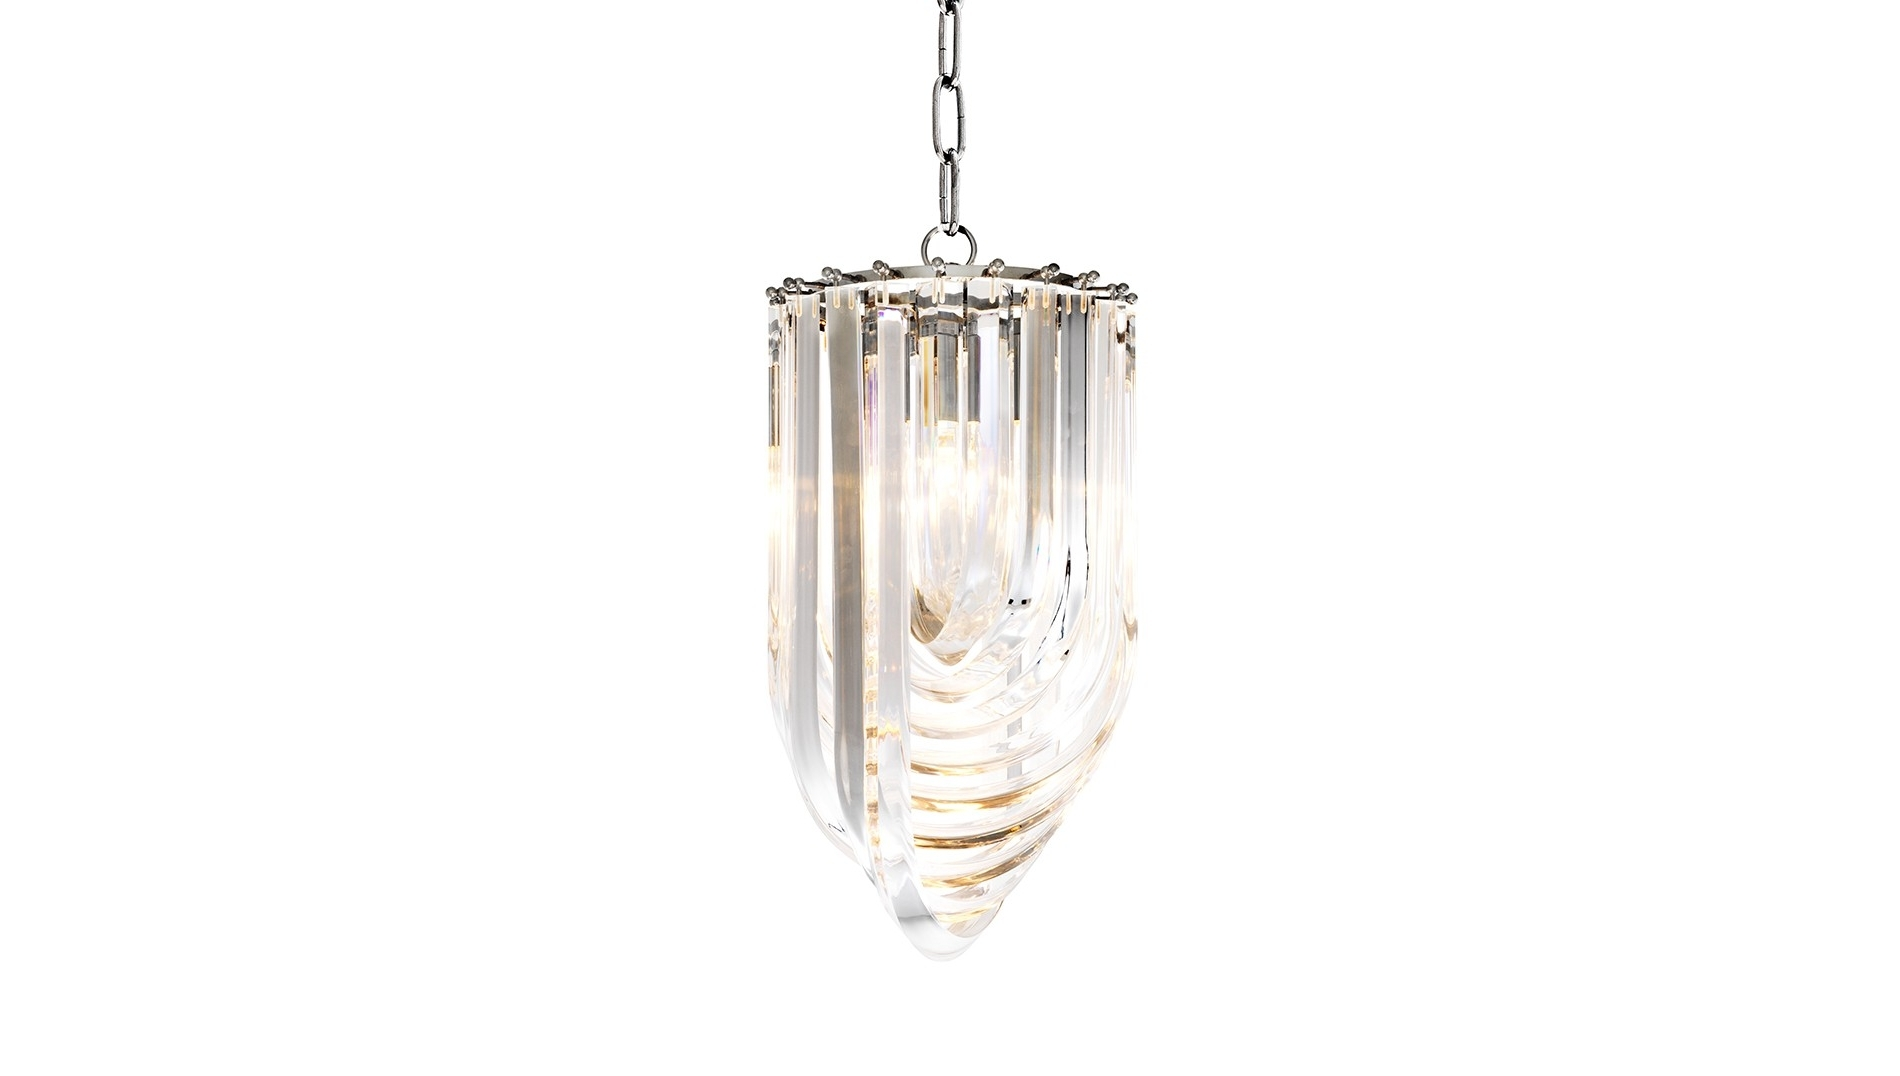 Murano Chandelier – Buy Online At Luxdeco Intended For 2018 Murano Chandelier (View 12 of 15)